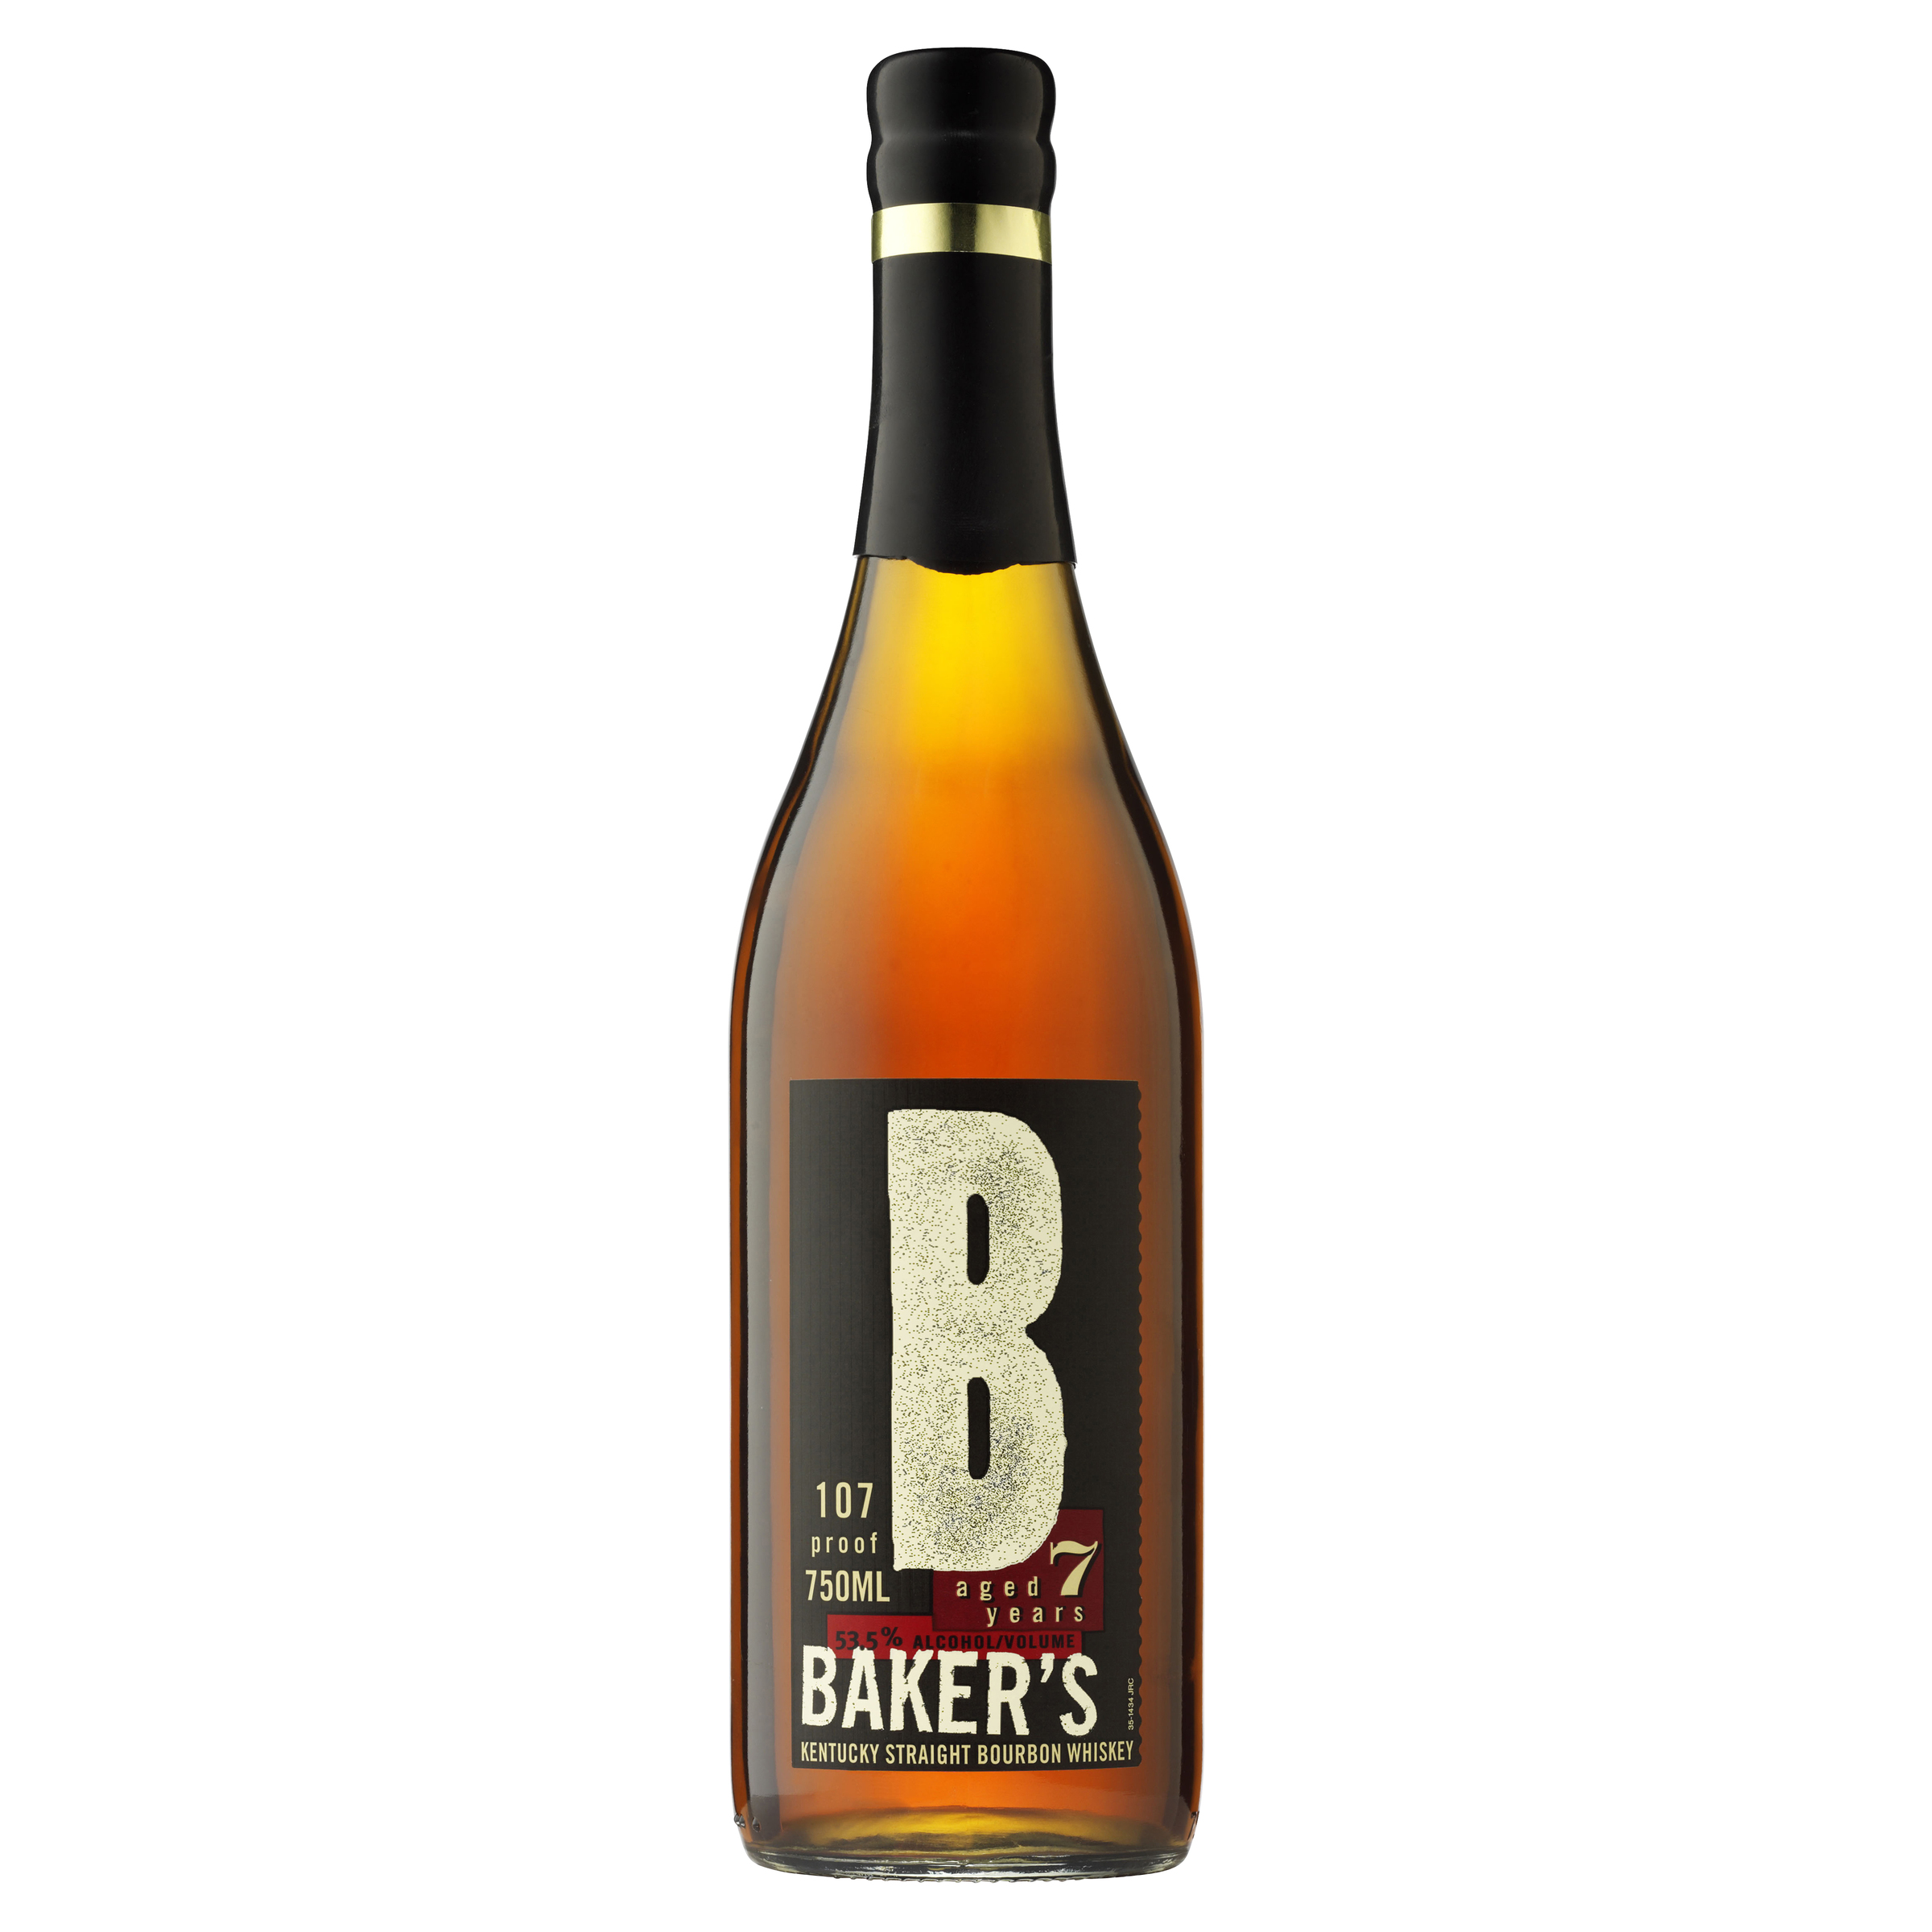 BAKER'S 7 YEAR OLD BOURBON